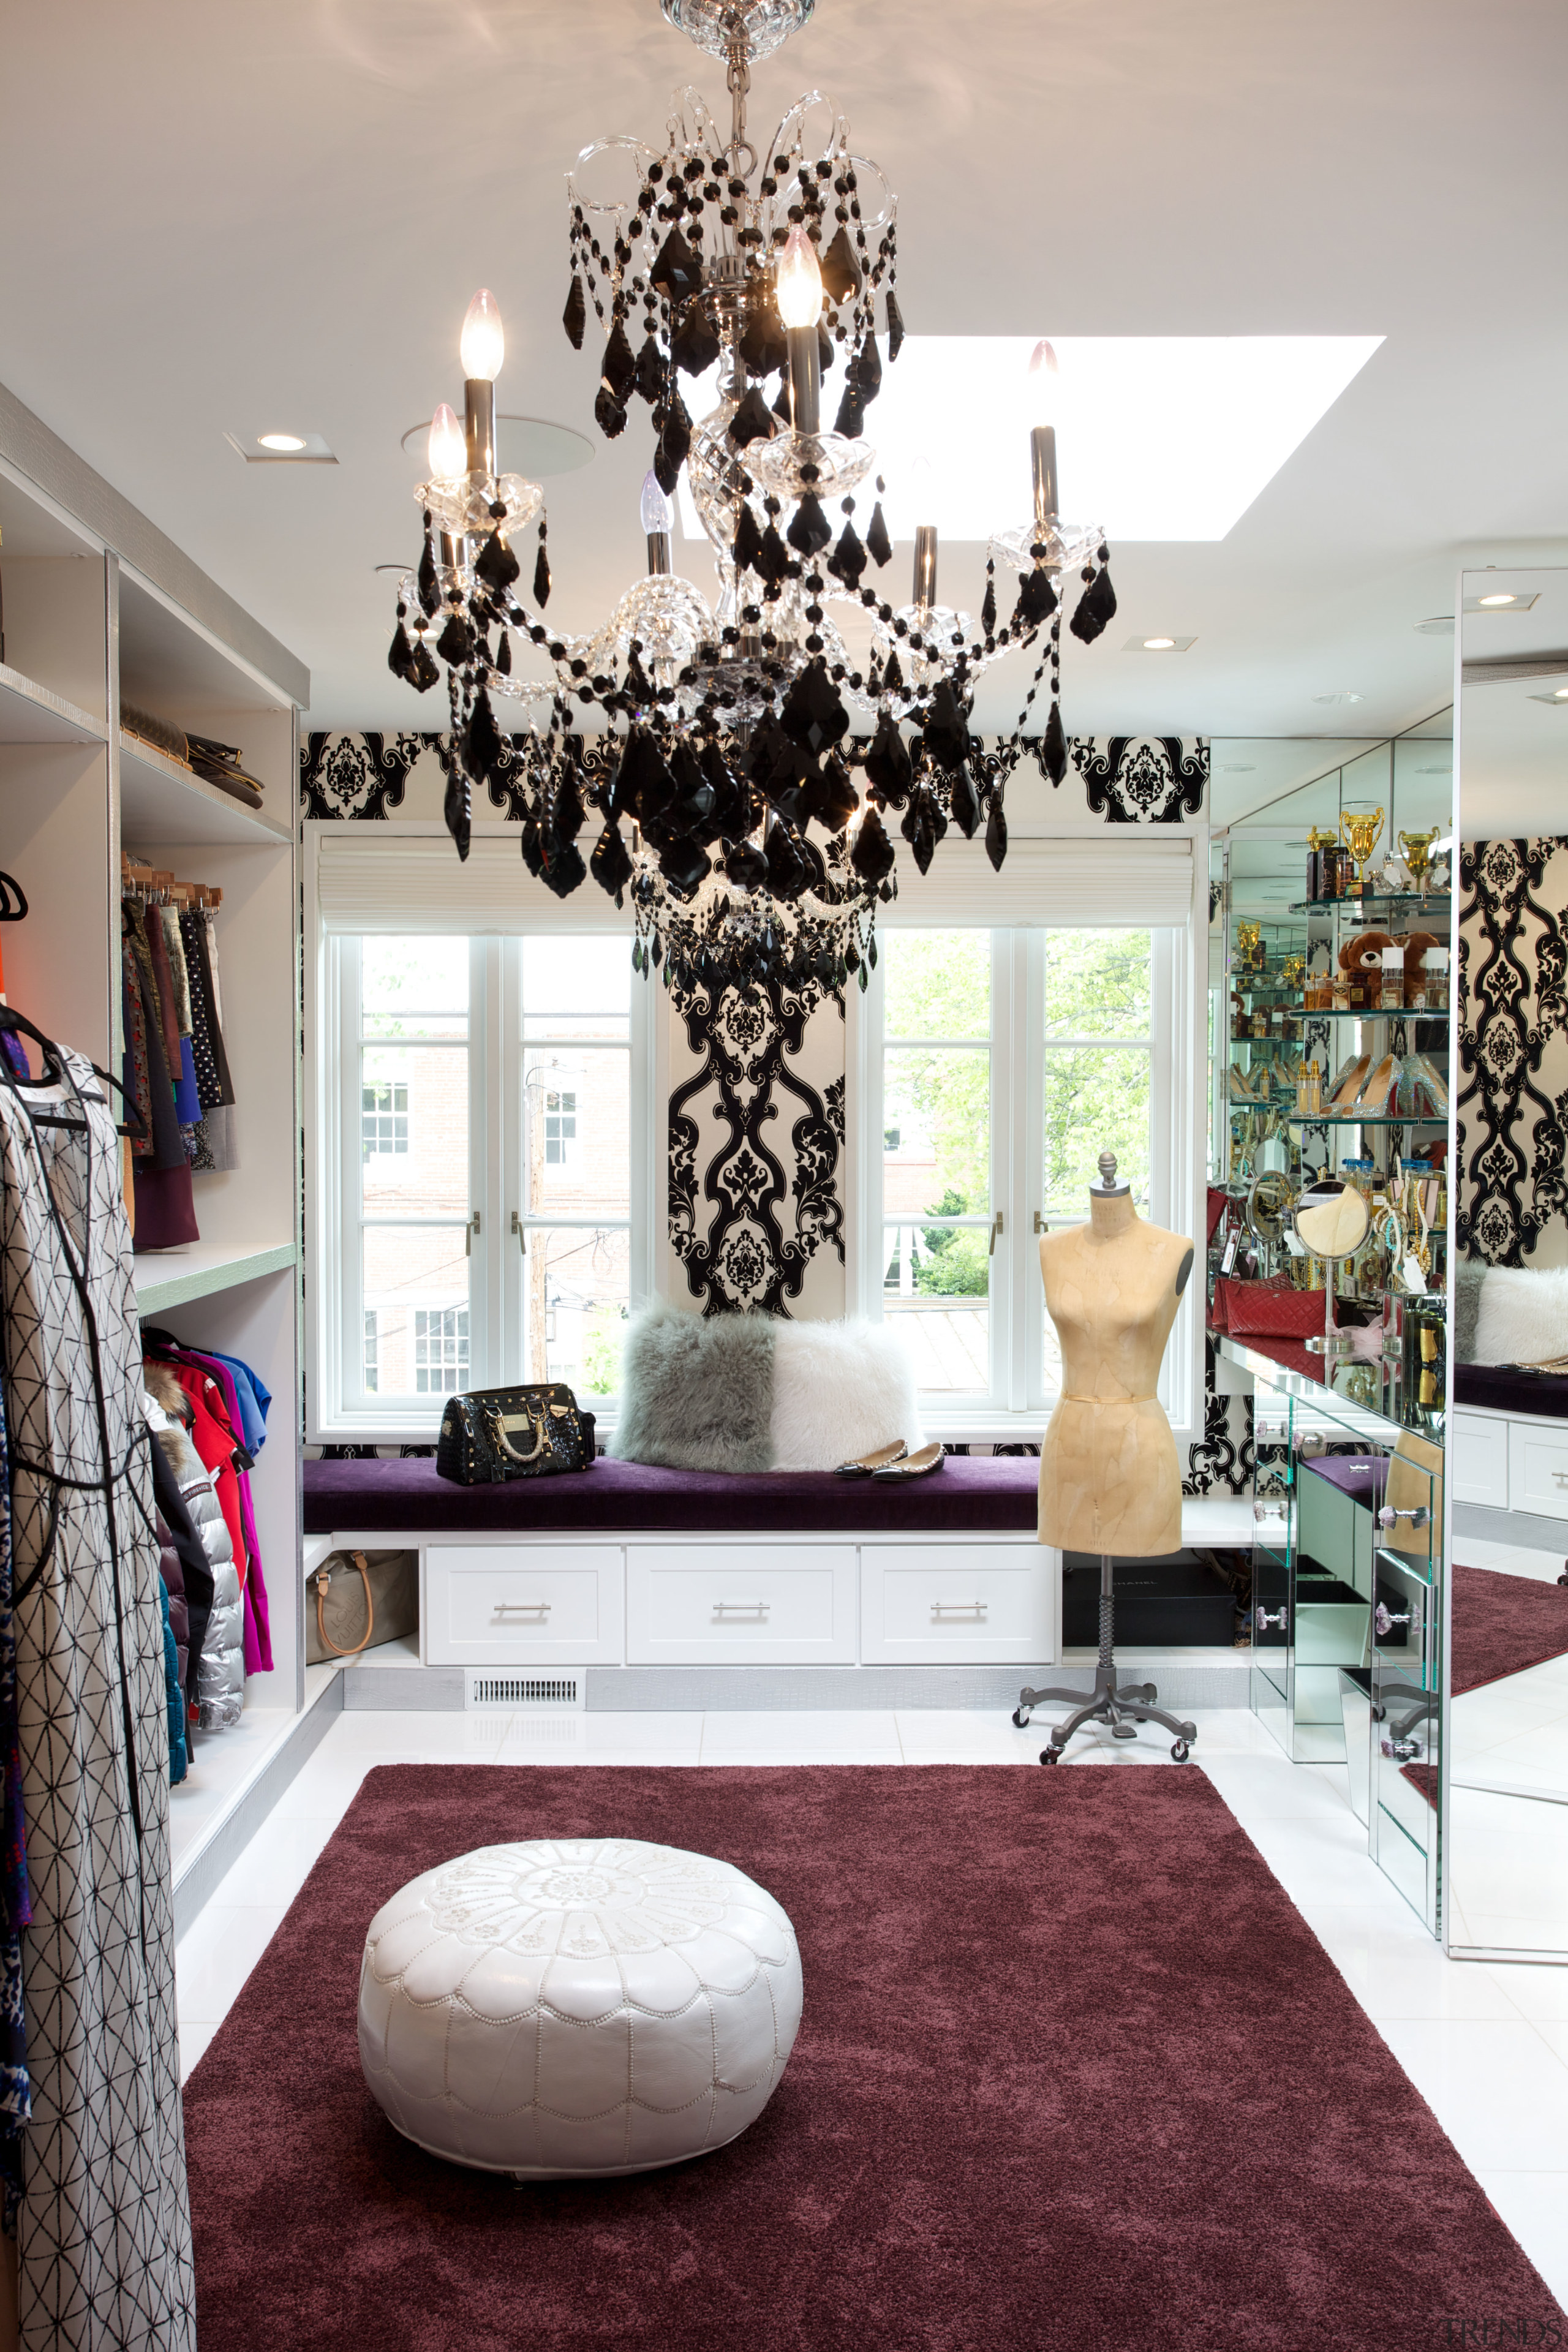 A glamorous dressing room at the other end boutique, home, interior design, living room, room, gray